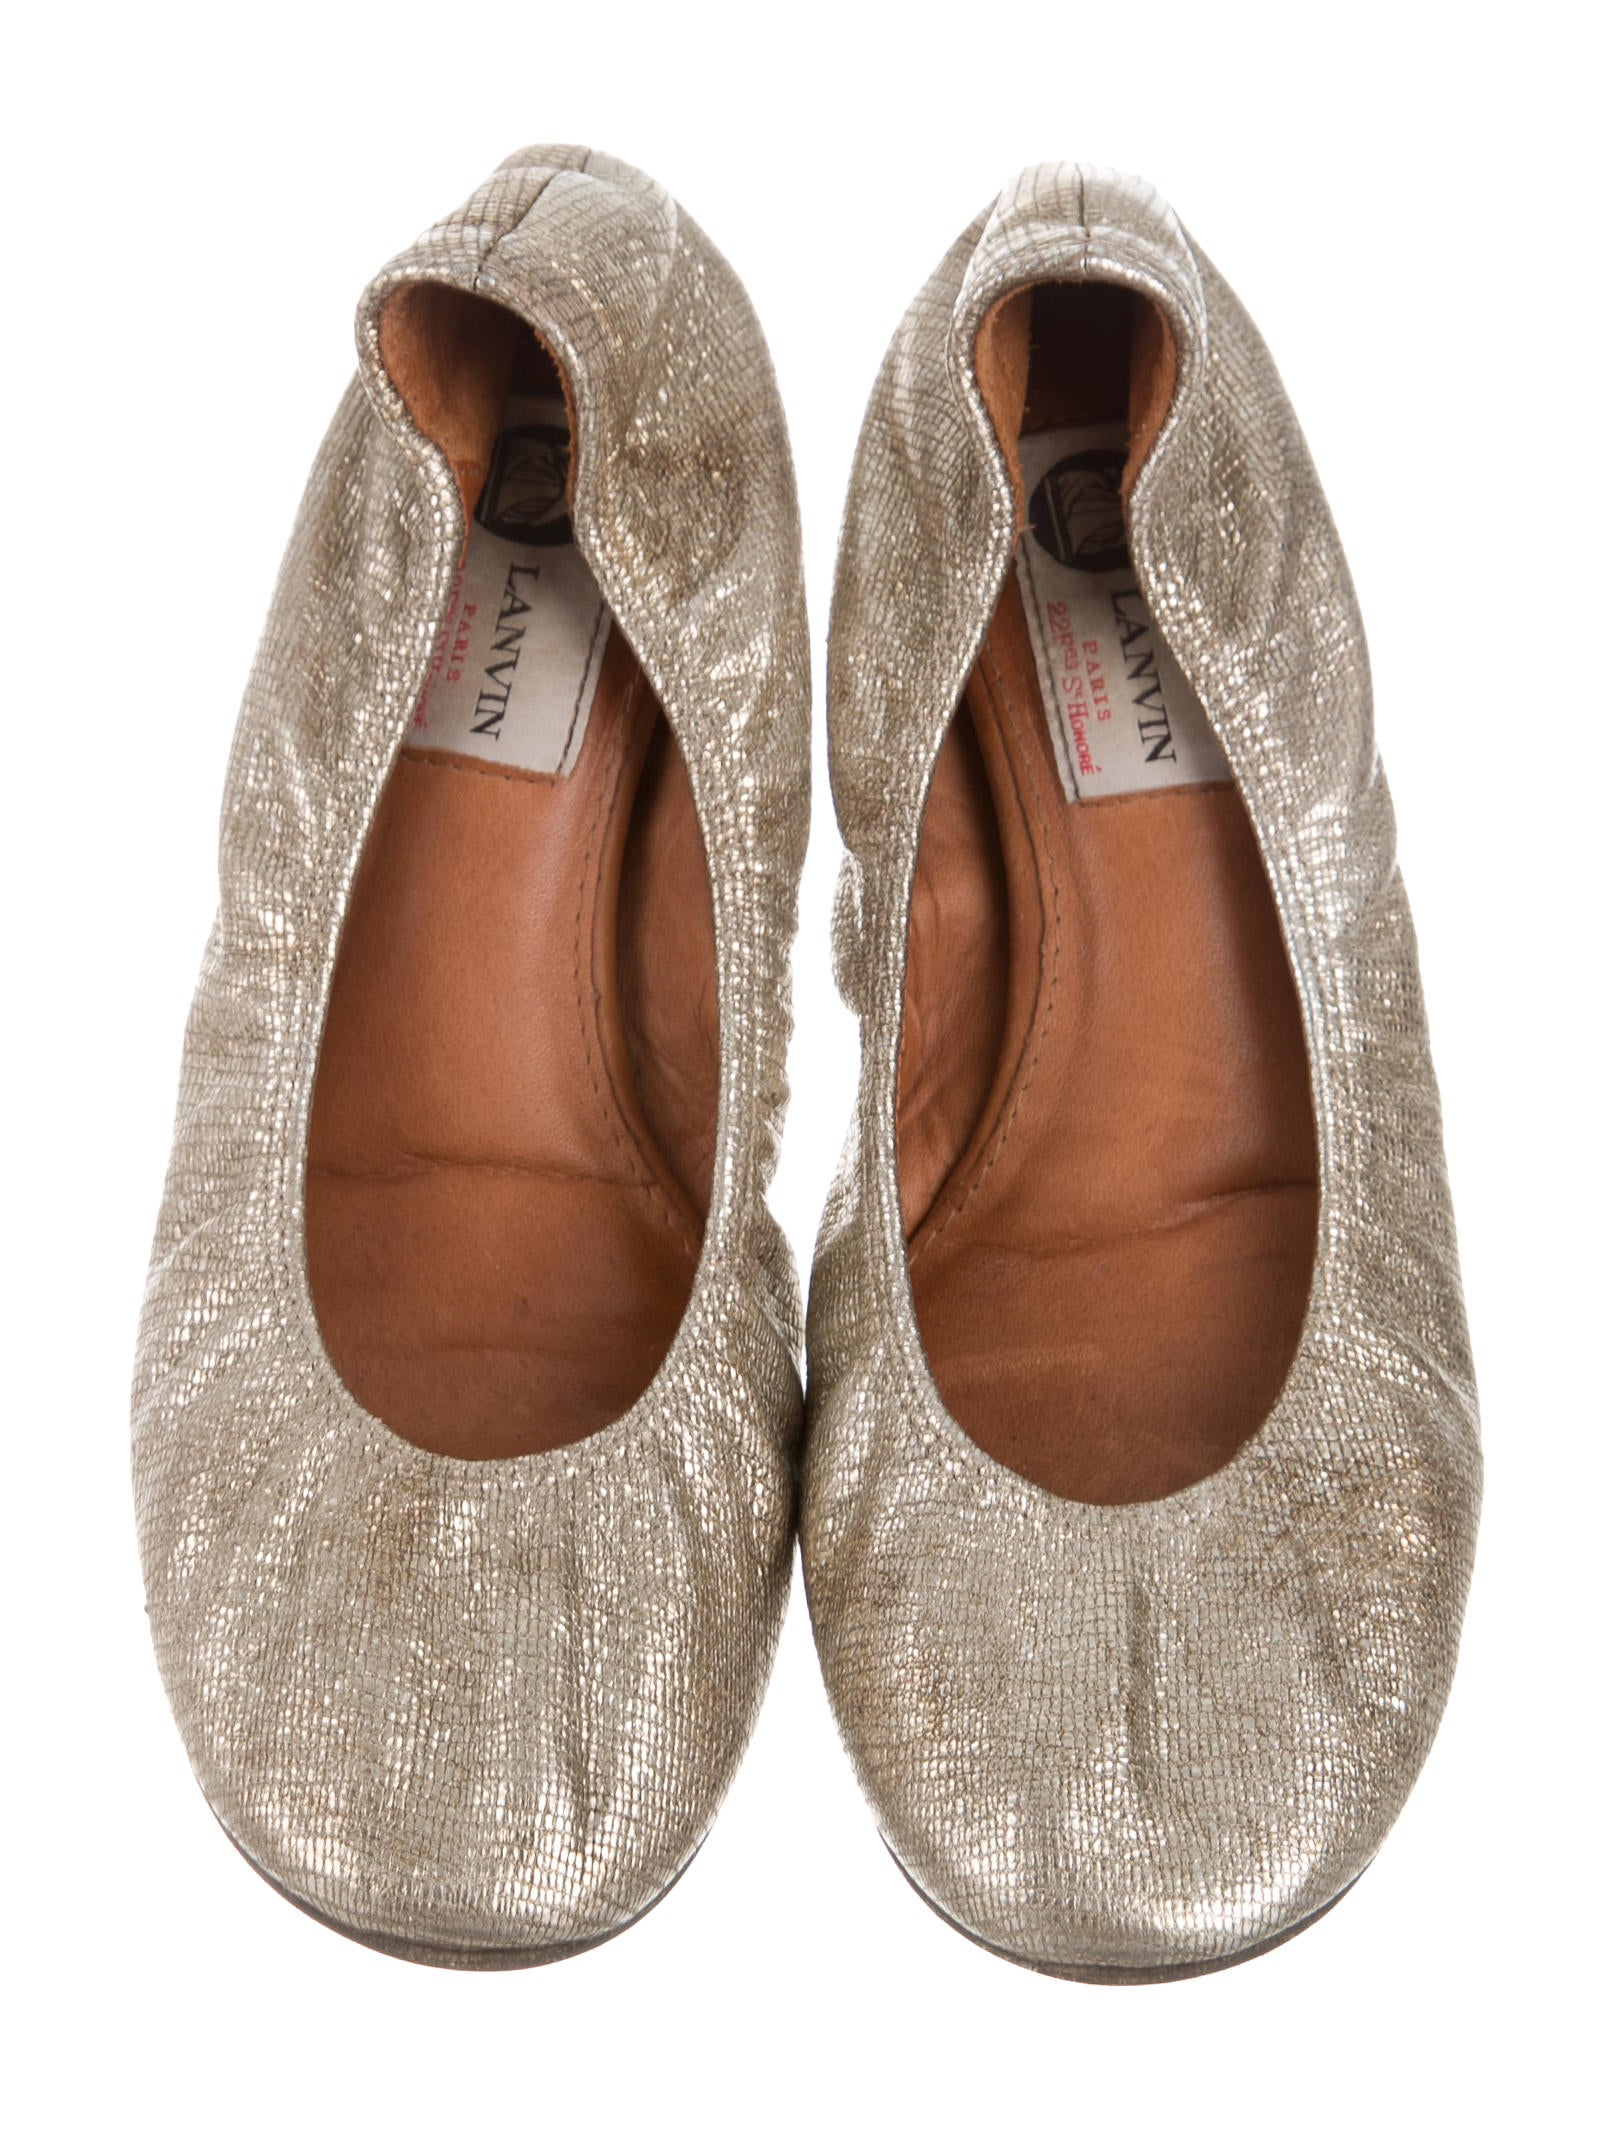 lanvin leather ballet flats shoes lan56183 the realreal